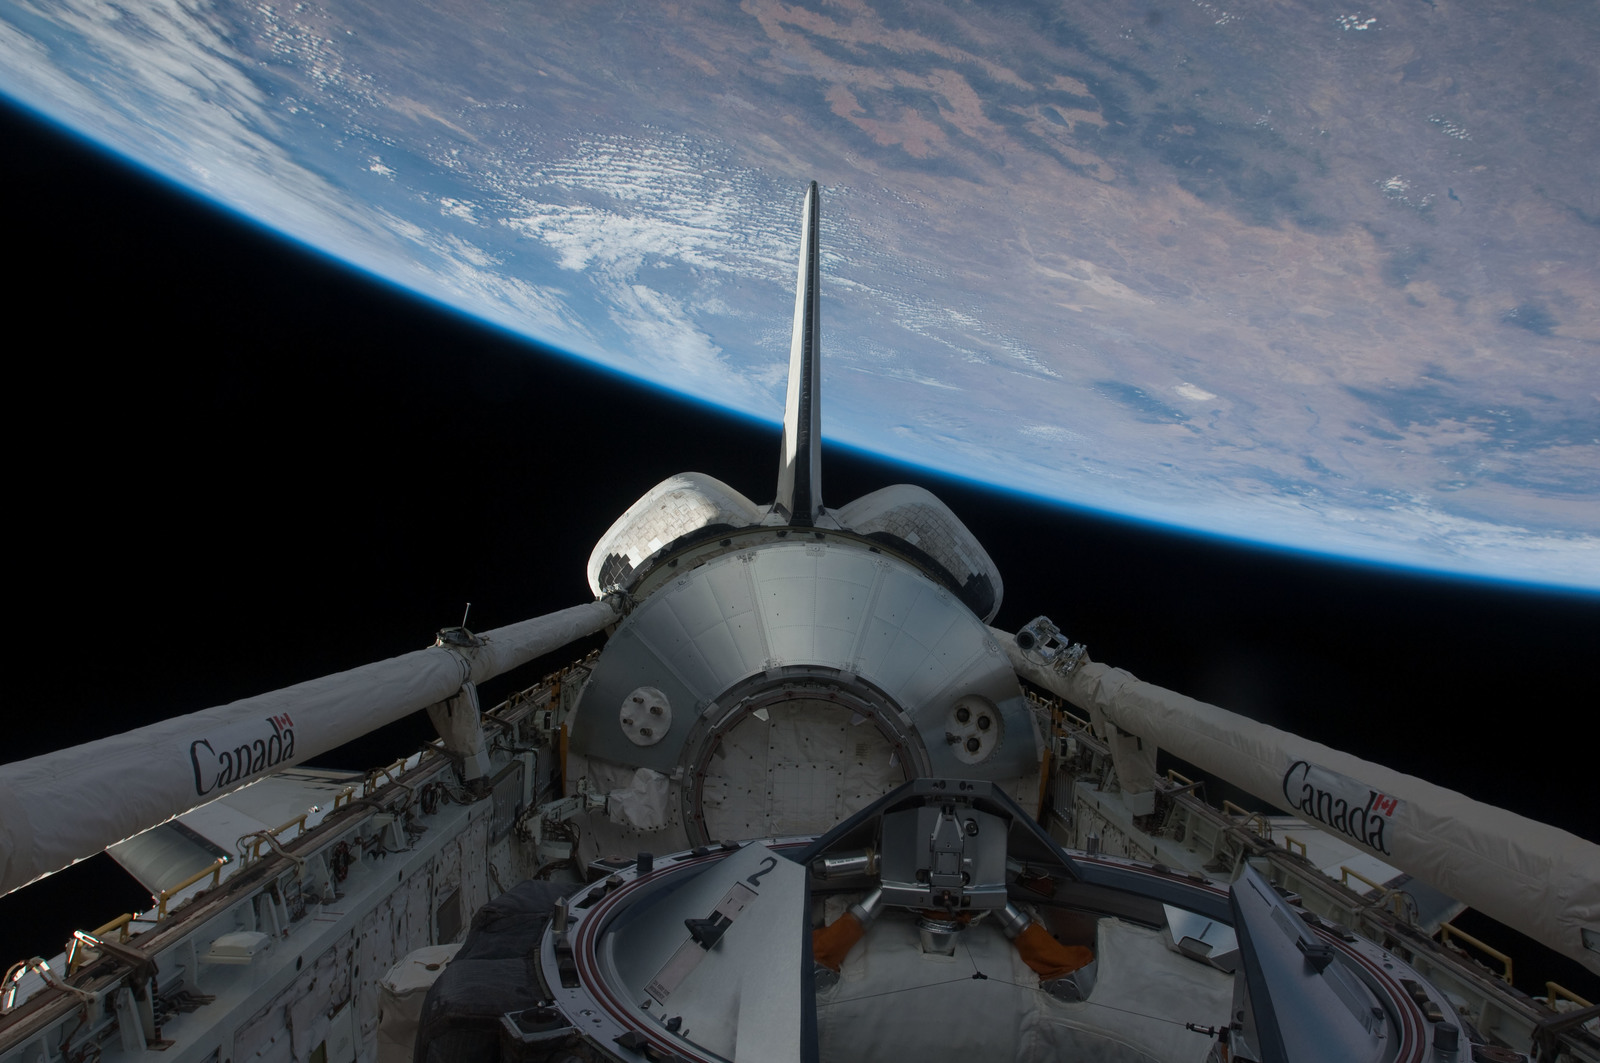 S126E026982 - STS-126 - Payload Bay of Endeavour